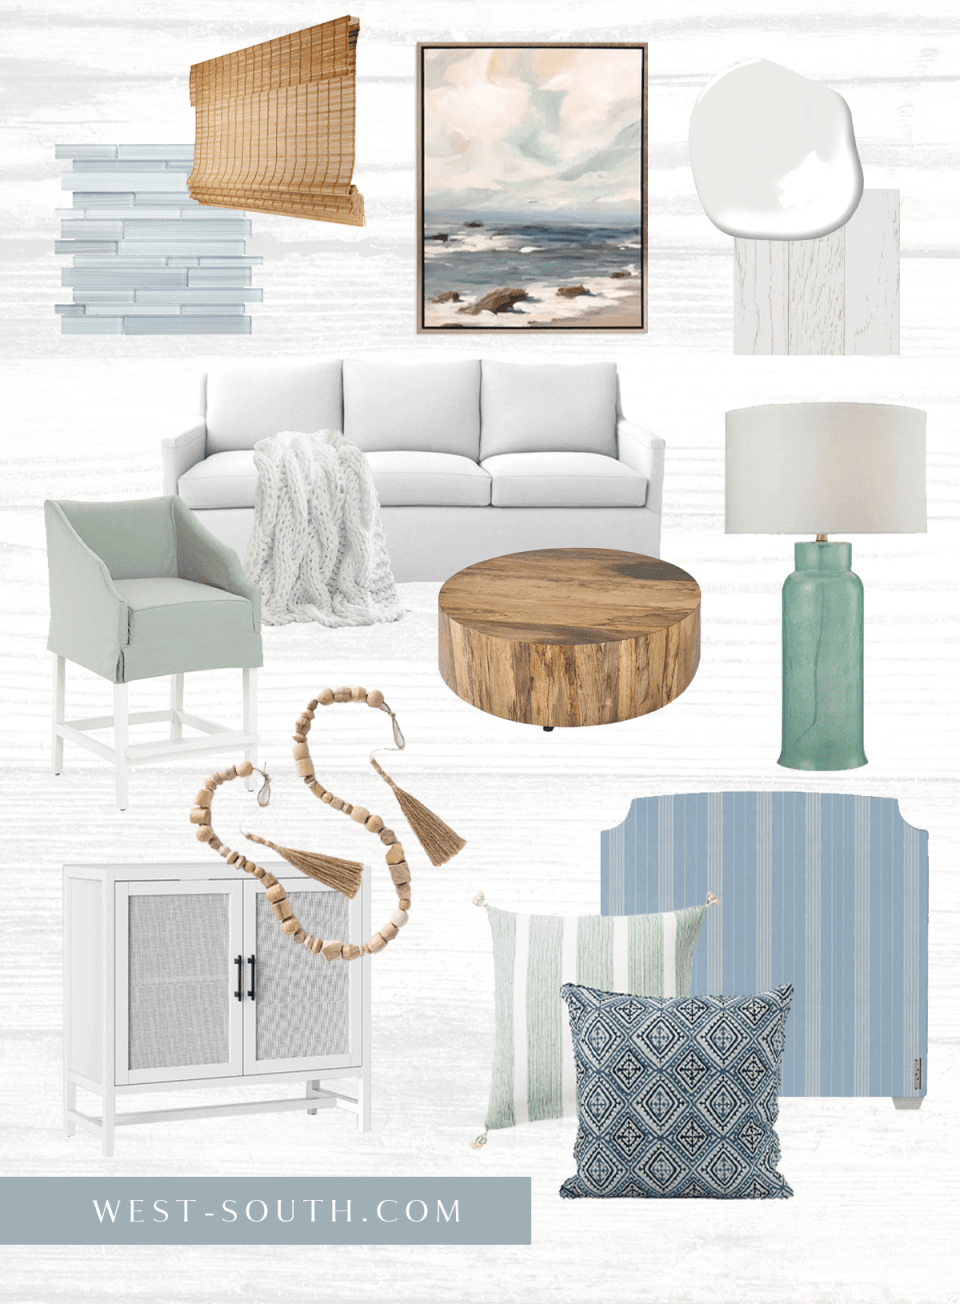 moodboard of coastal cottage with seaglass colors